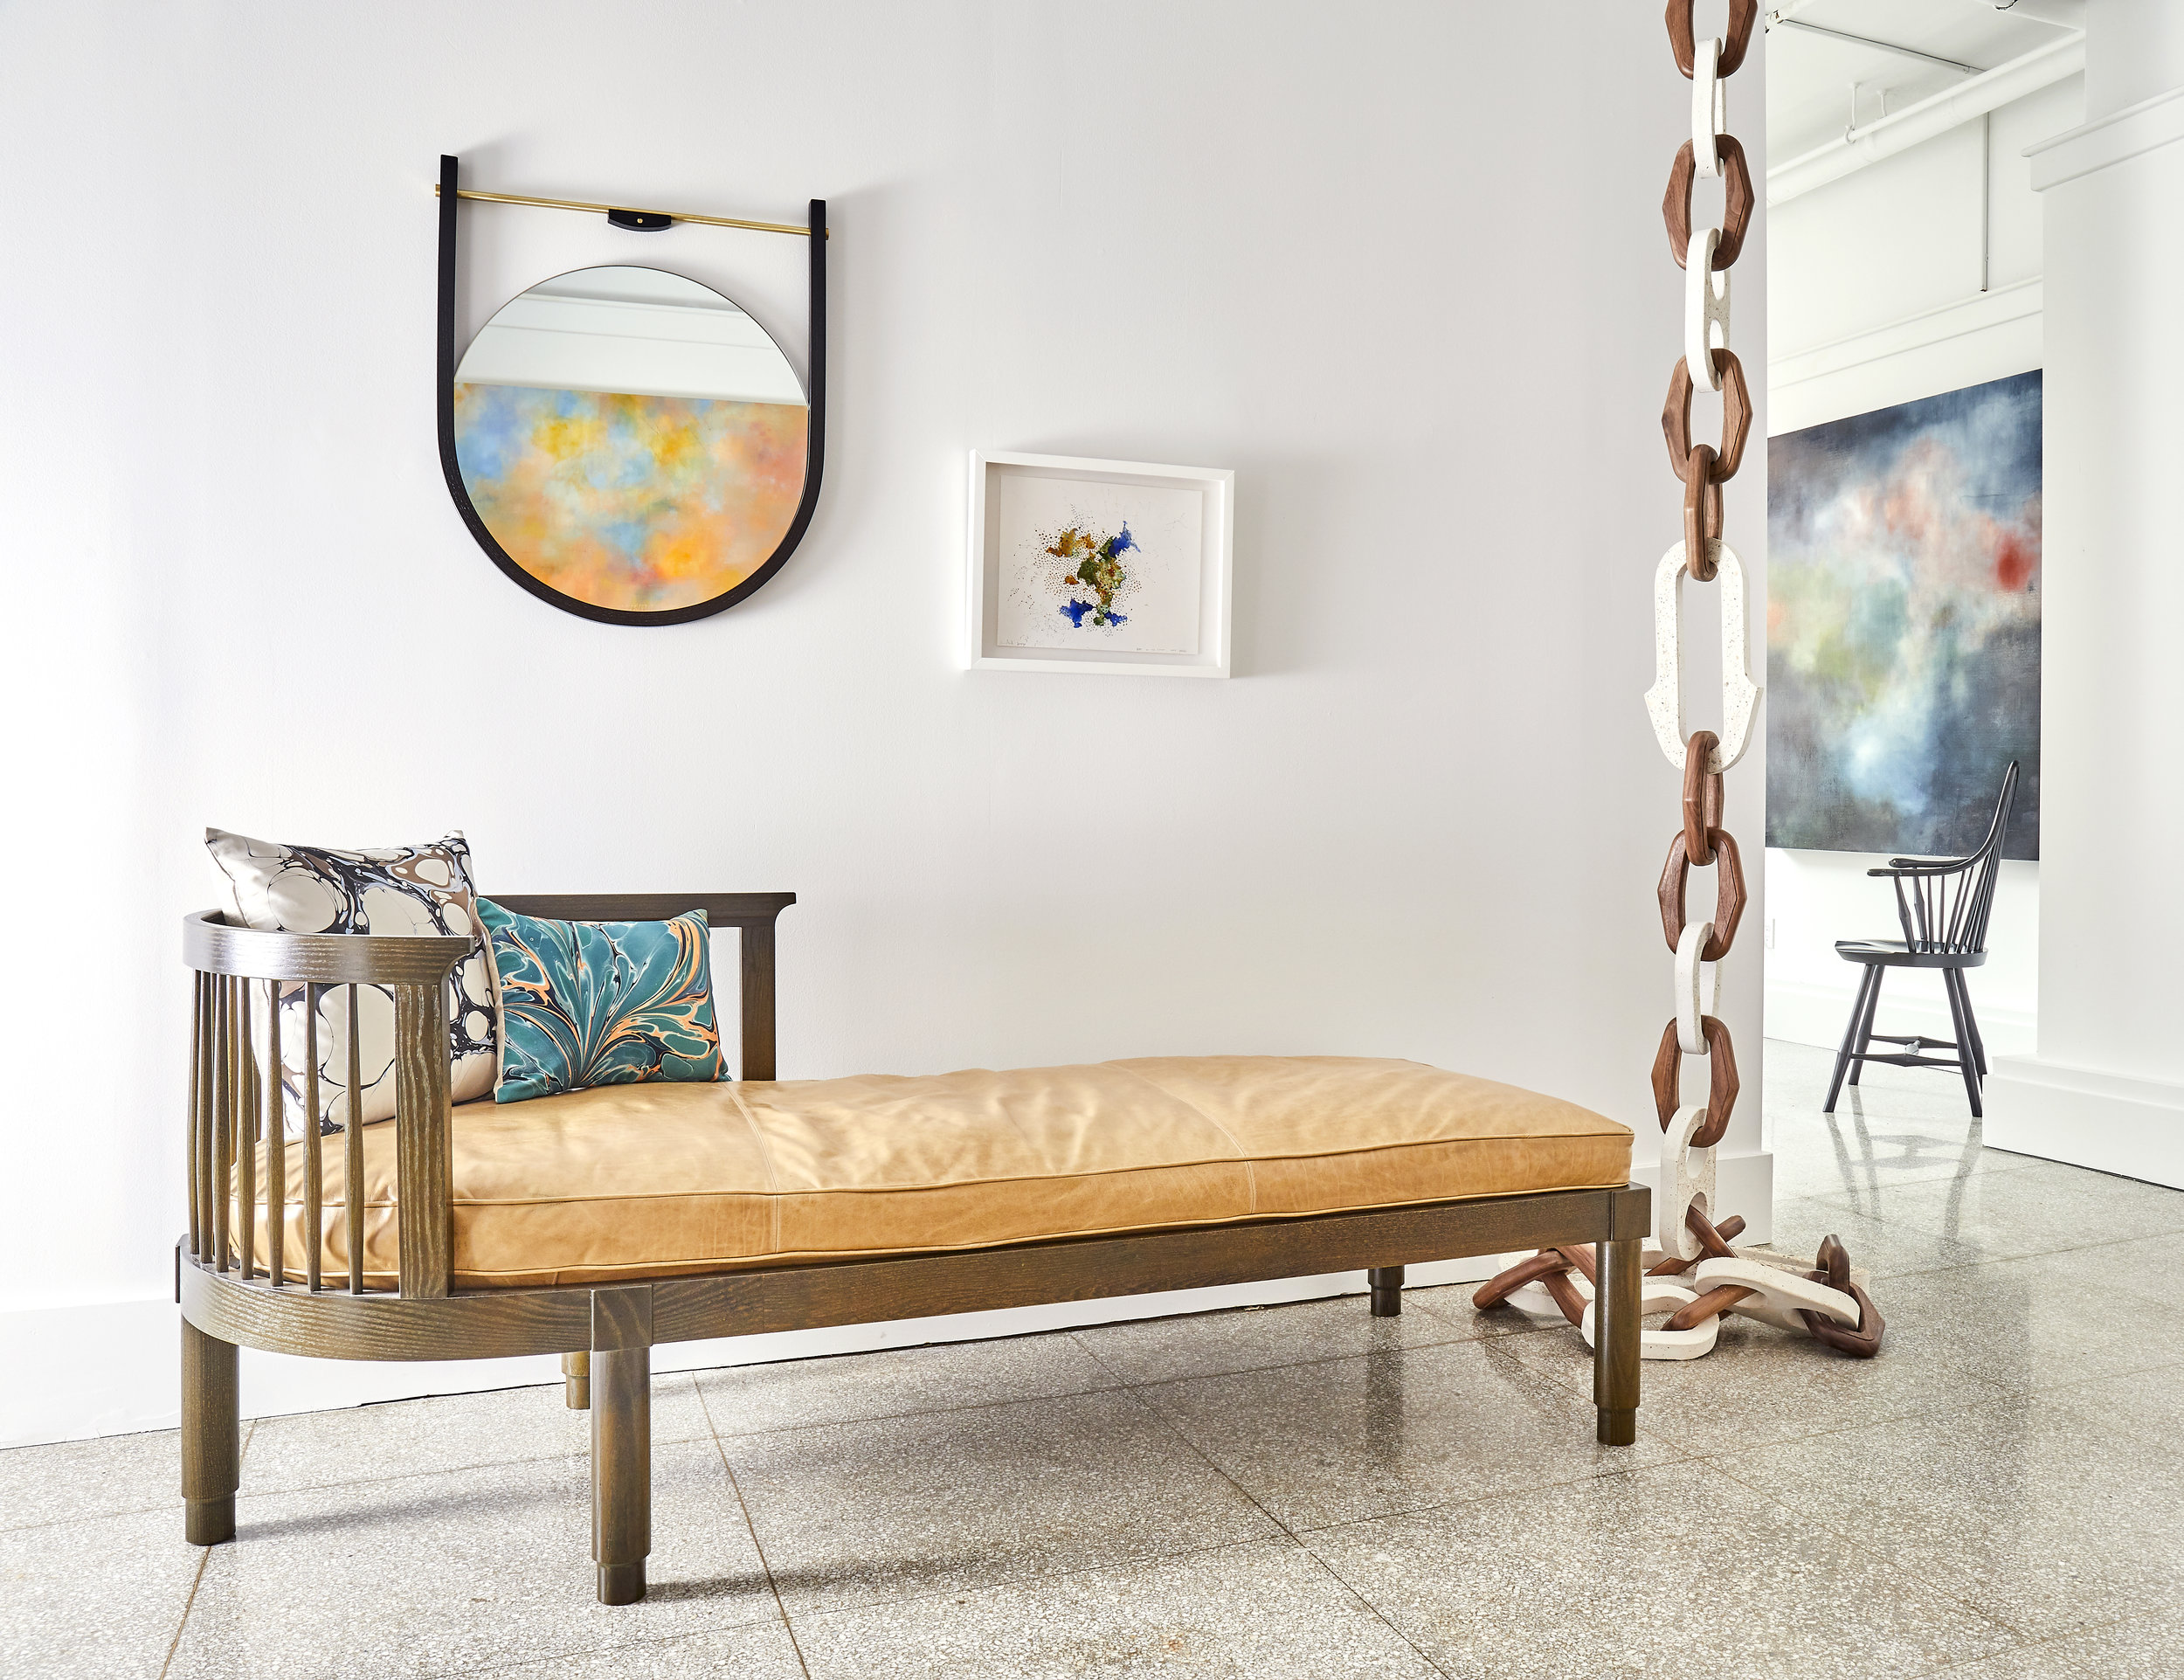 O&G-SALON - INLET DAYBED w:RULE OF THREE - PHOTO ANGEL TUCKER.jpg